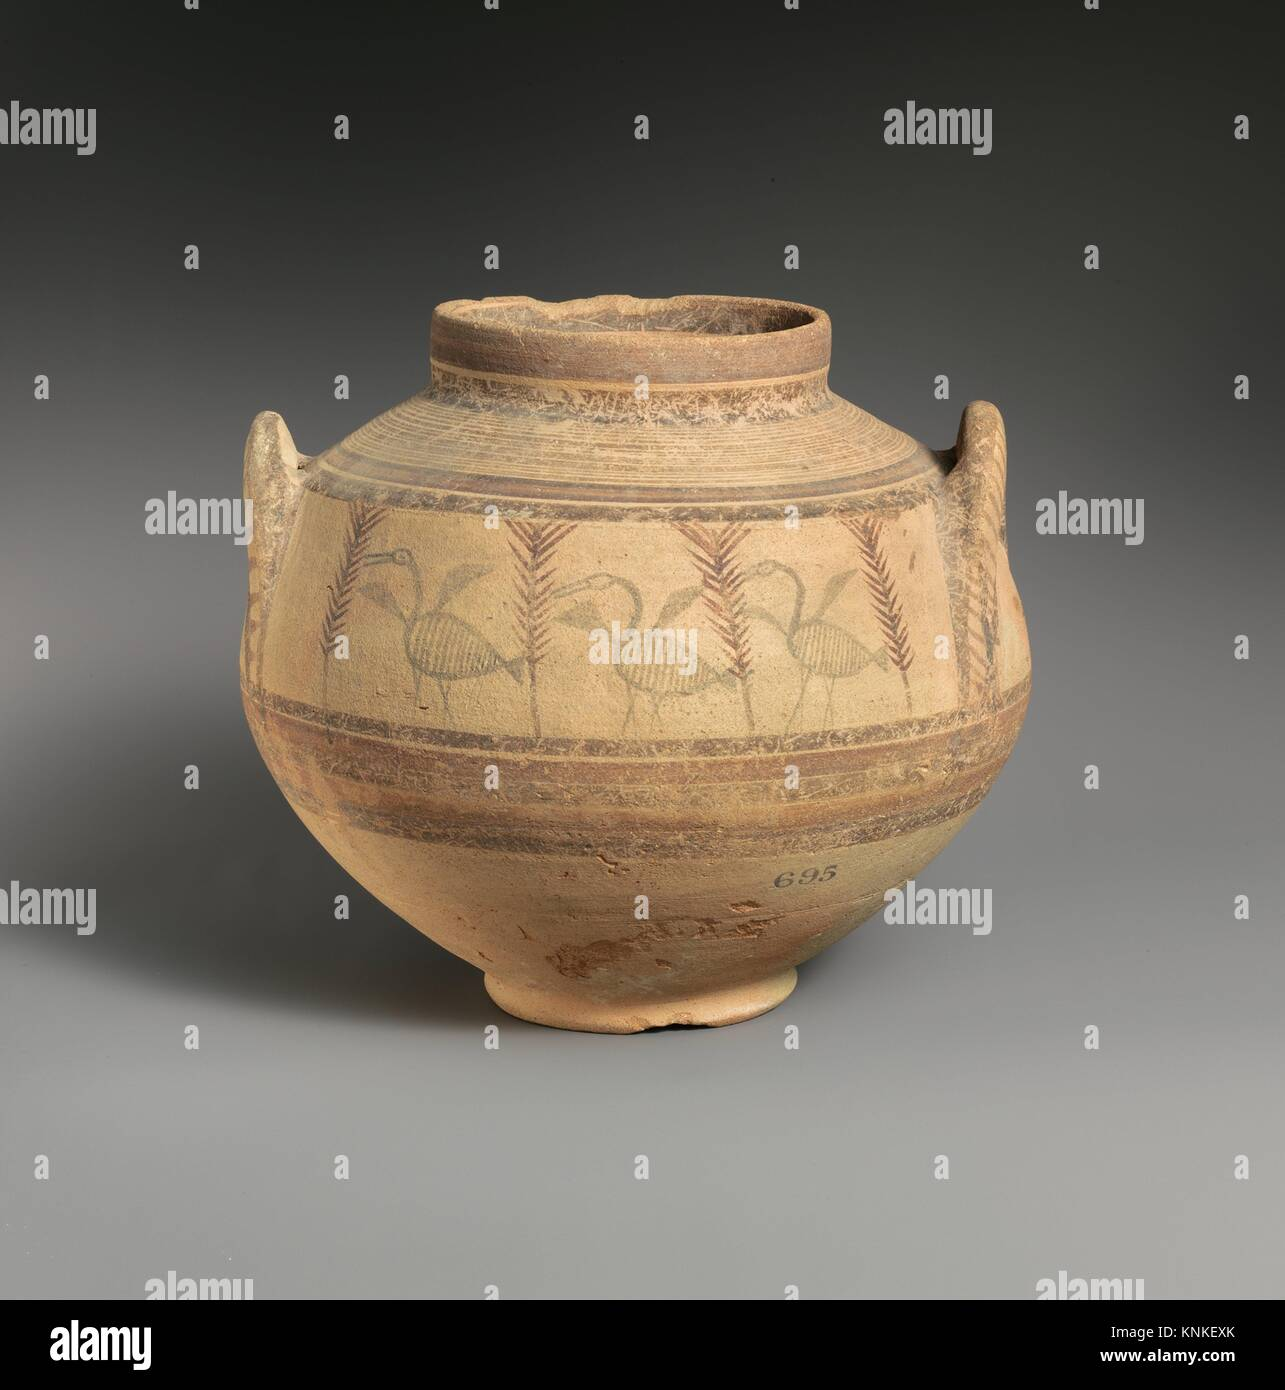 Krater. Period: Cypro-Archaic I; Date: 750-600 B.C; Culture: Cypriot; Medium: Terracotta; Dimensions: 8 7/8in. (22.6cm); Stock Photo